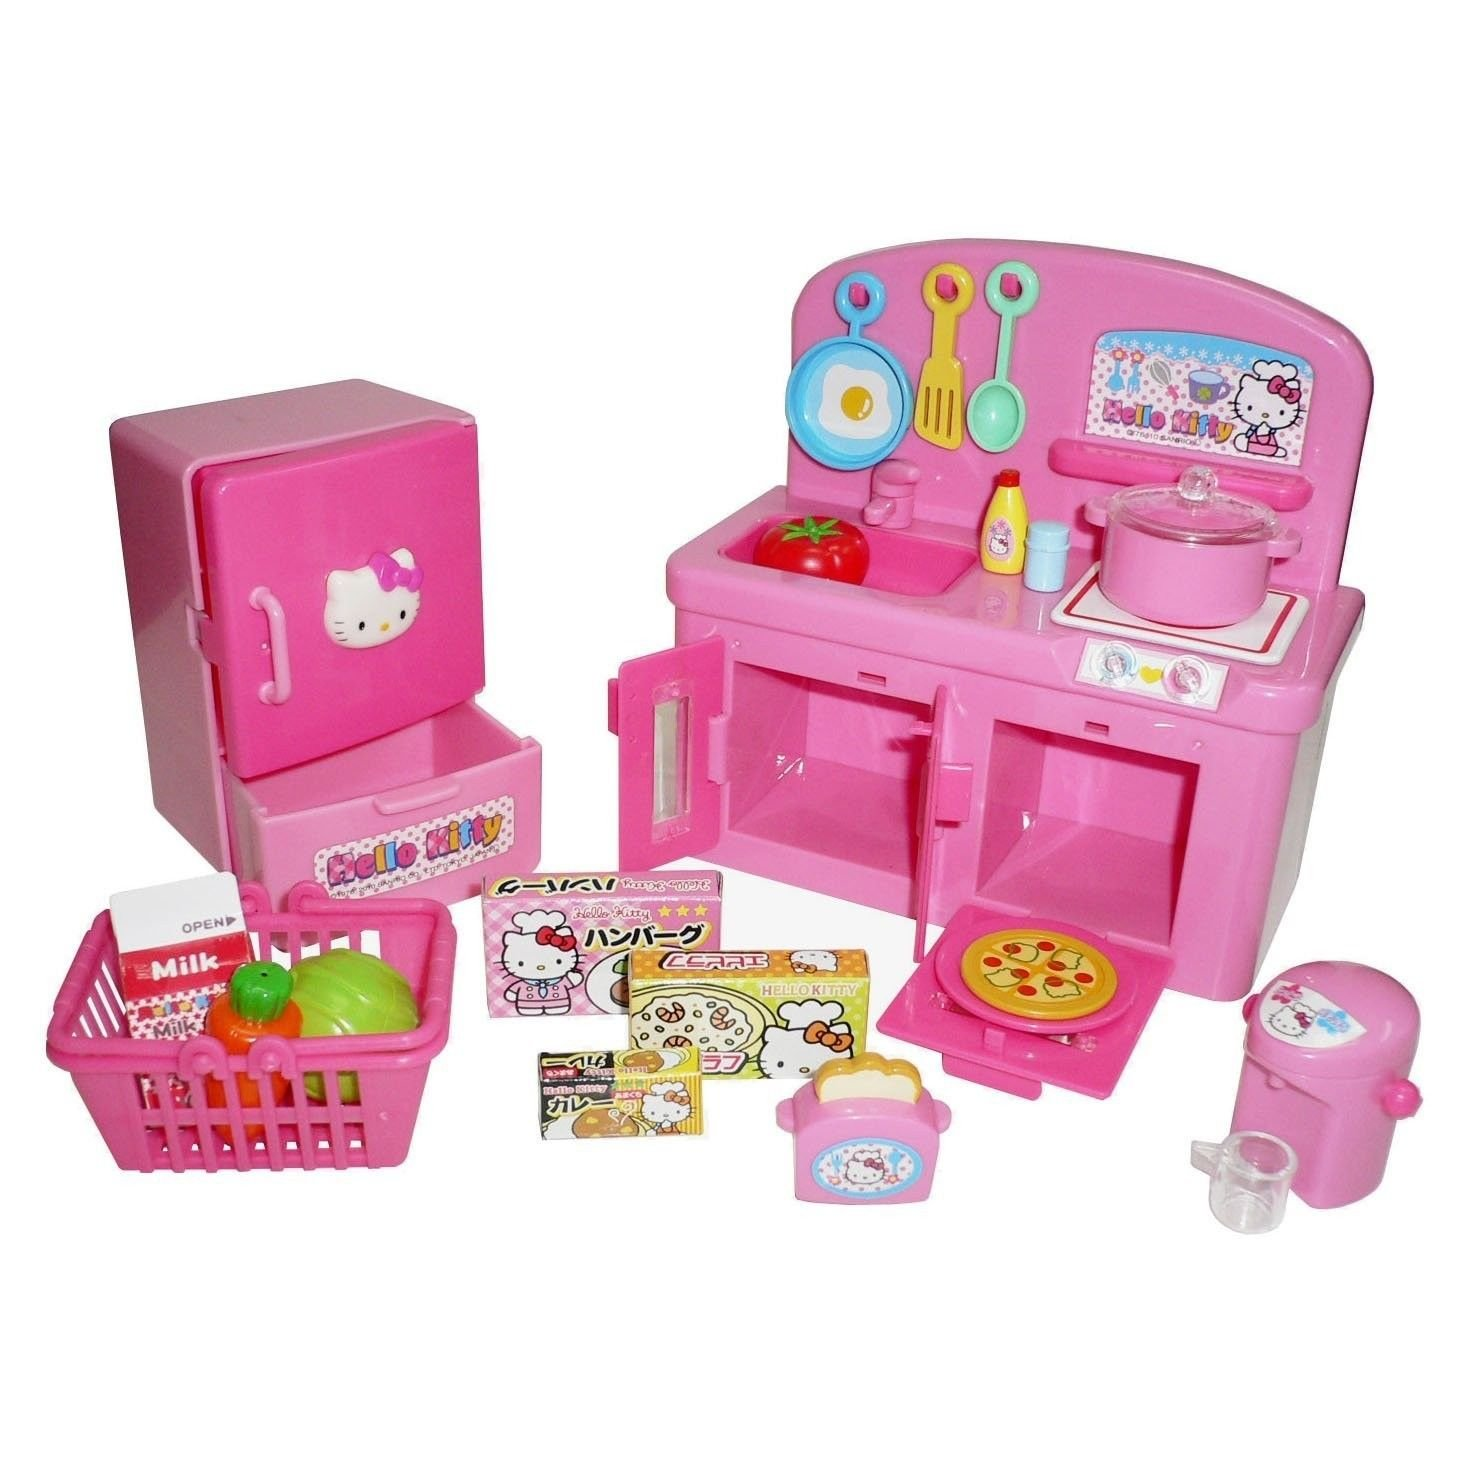 Hello Kitty Kitchen and Refrigerator Sets Sold Together - Everything Needed for Cooking Play by Hello Kitty (Image #2)